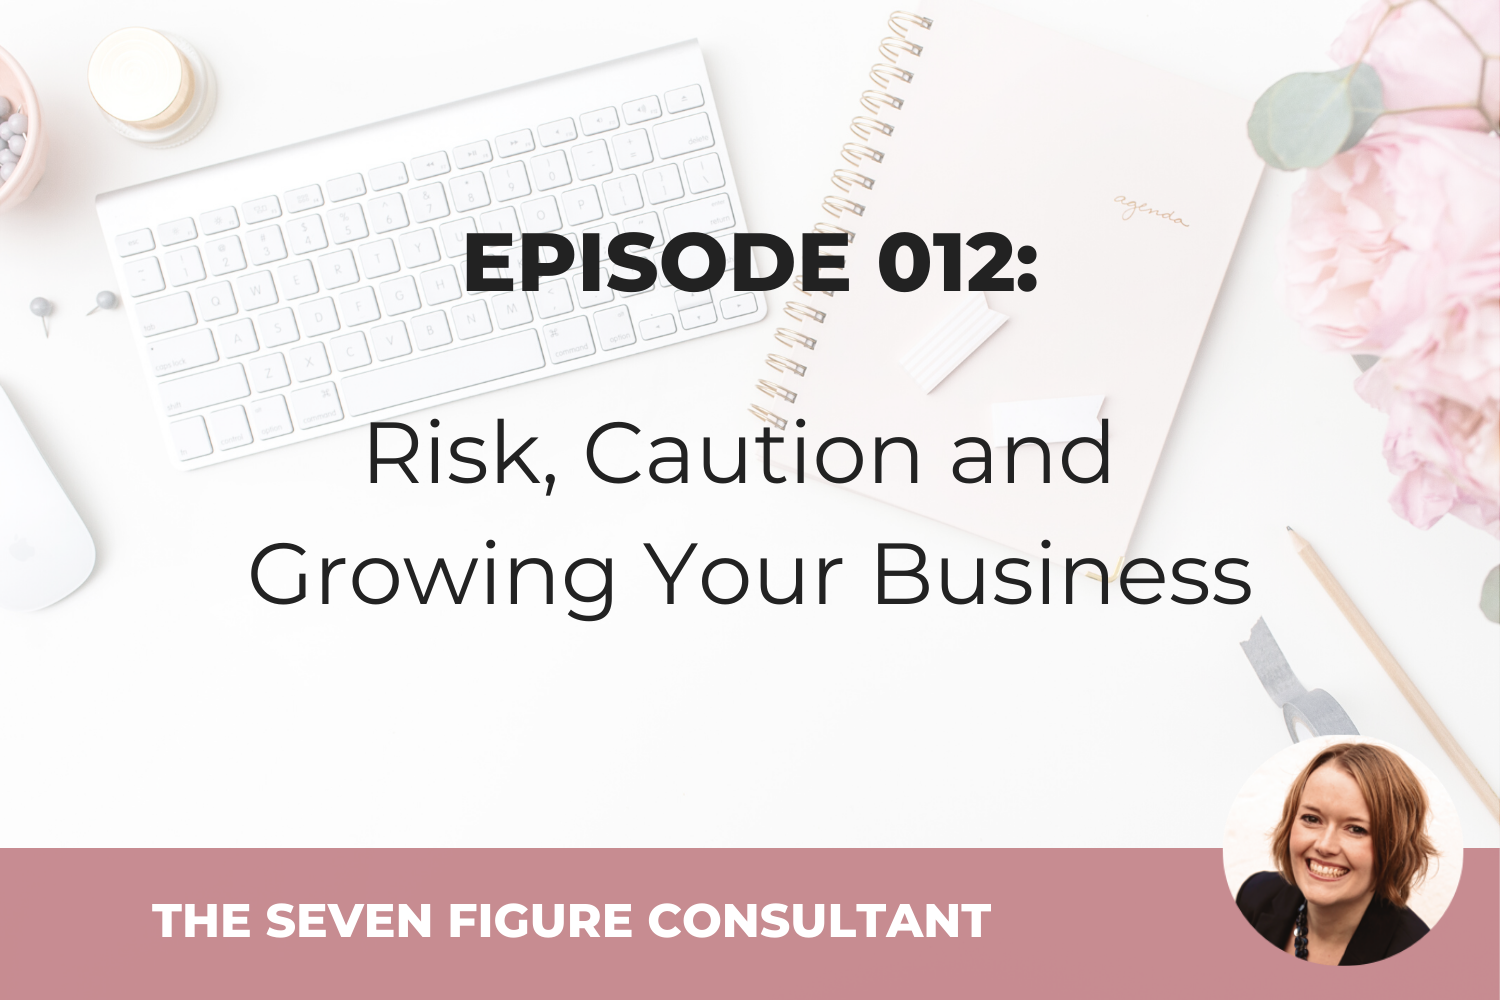 Episode 012: Risk, Caution and Growing Your Business